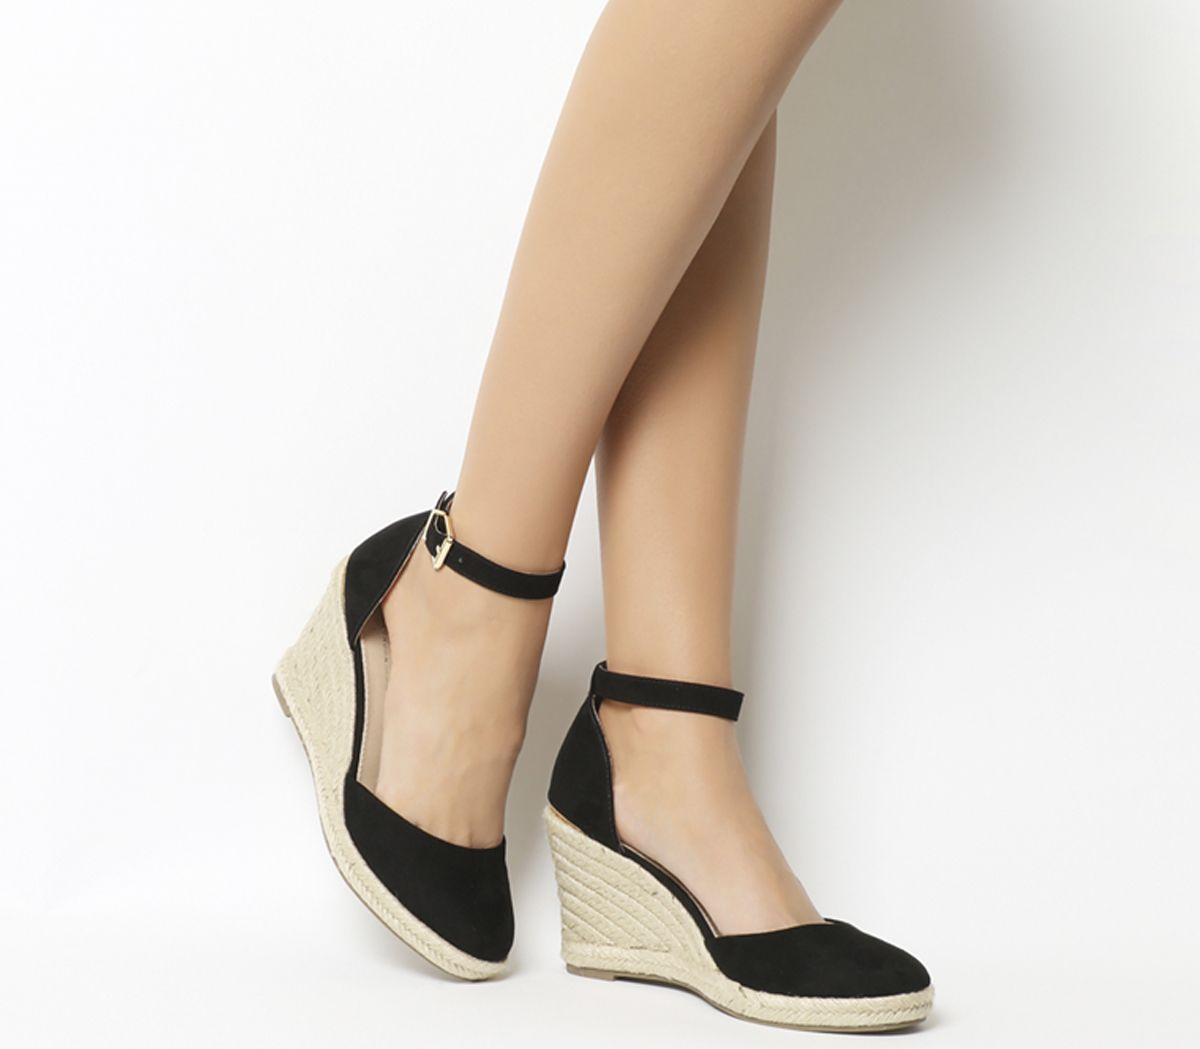 f6499297684 Office Marsha Closed Toe Espadrille Wedges Black With Gold Heel Clip ...